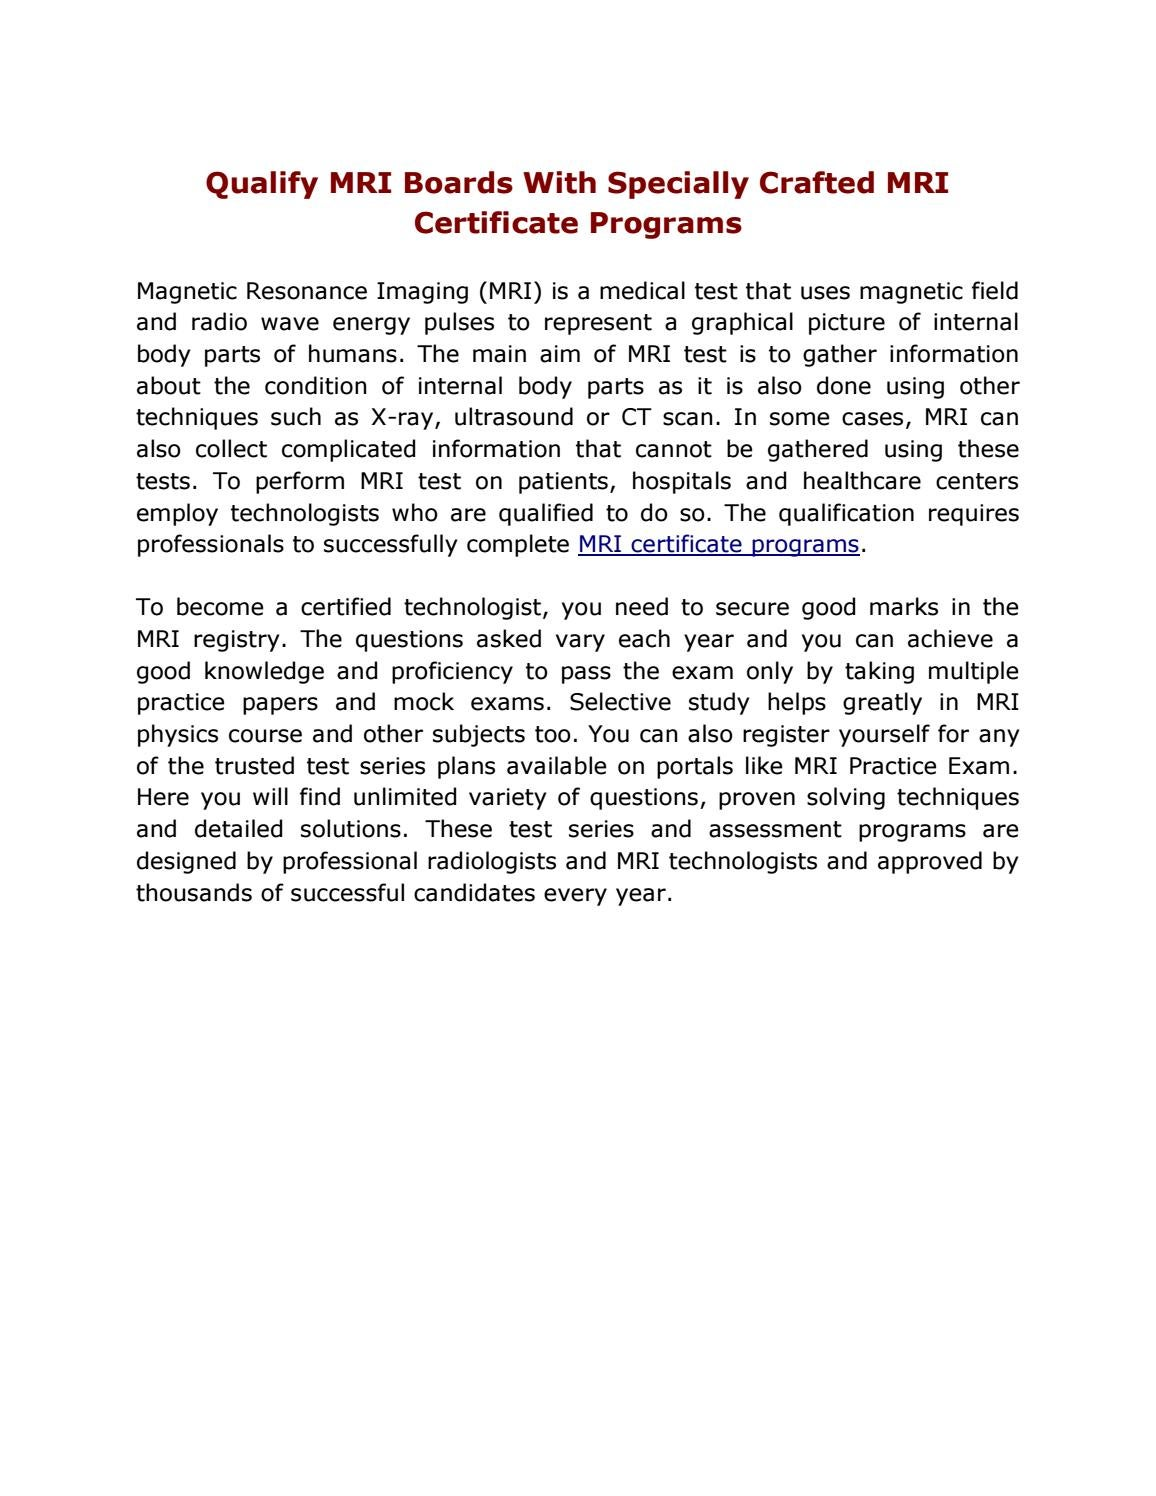 Qualify Mri Boards With Specially Crafted Mri Certificate Programs